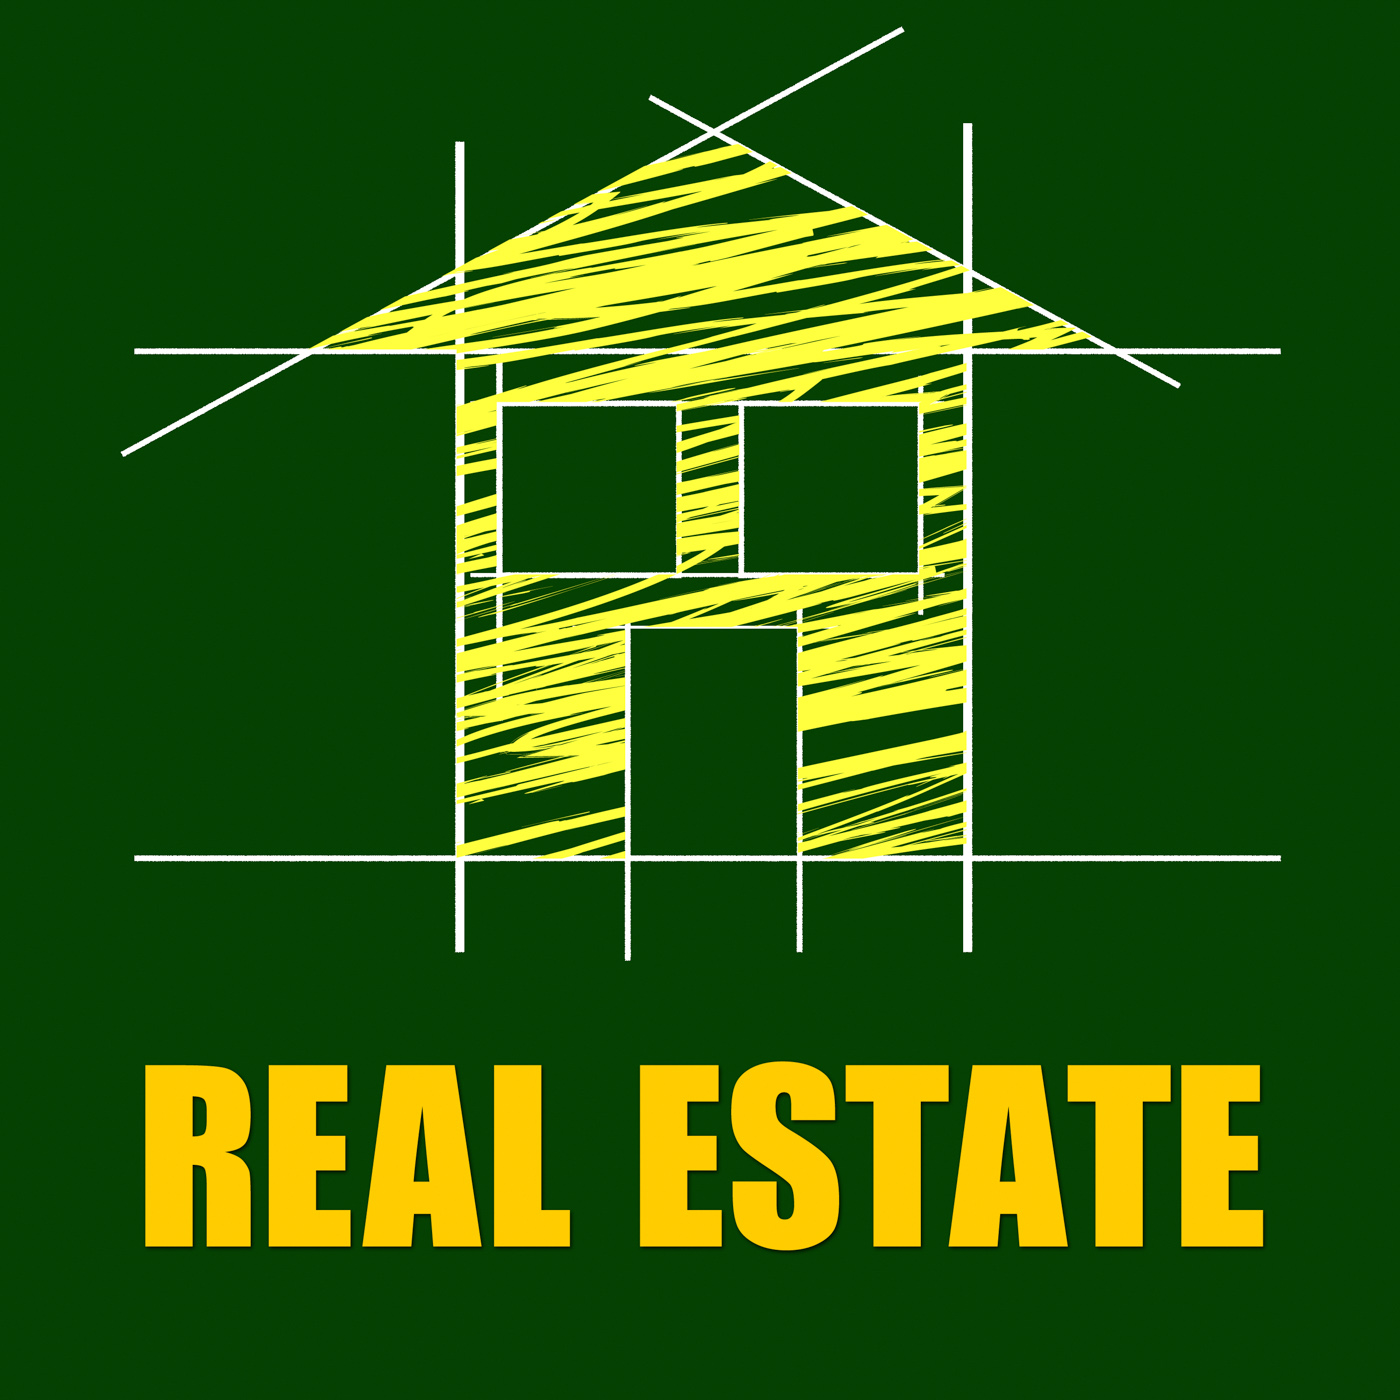 Real Estate Means On The Market And Apartment, Apartment, Industrial, Residential, Residence, HQ Photo